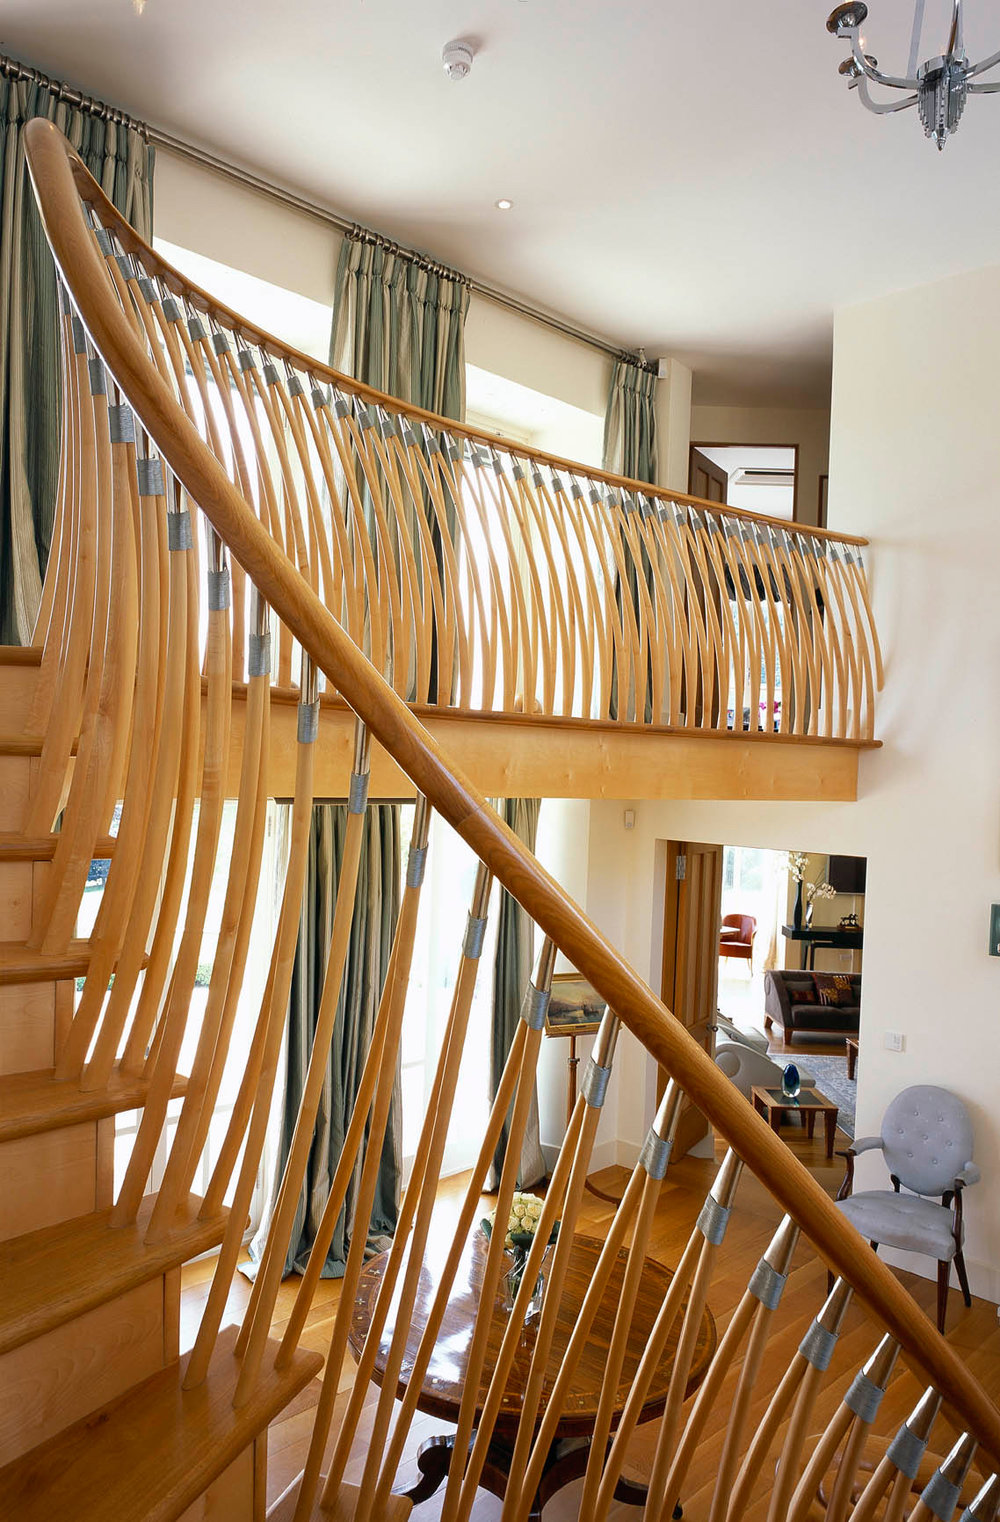 Contemporary staircase and doors in sycamore and oak, private house, London.